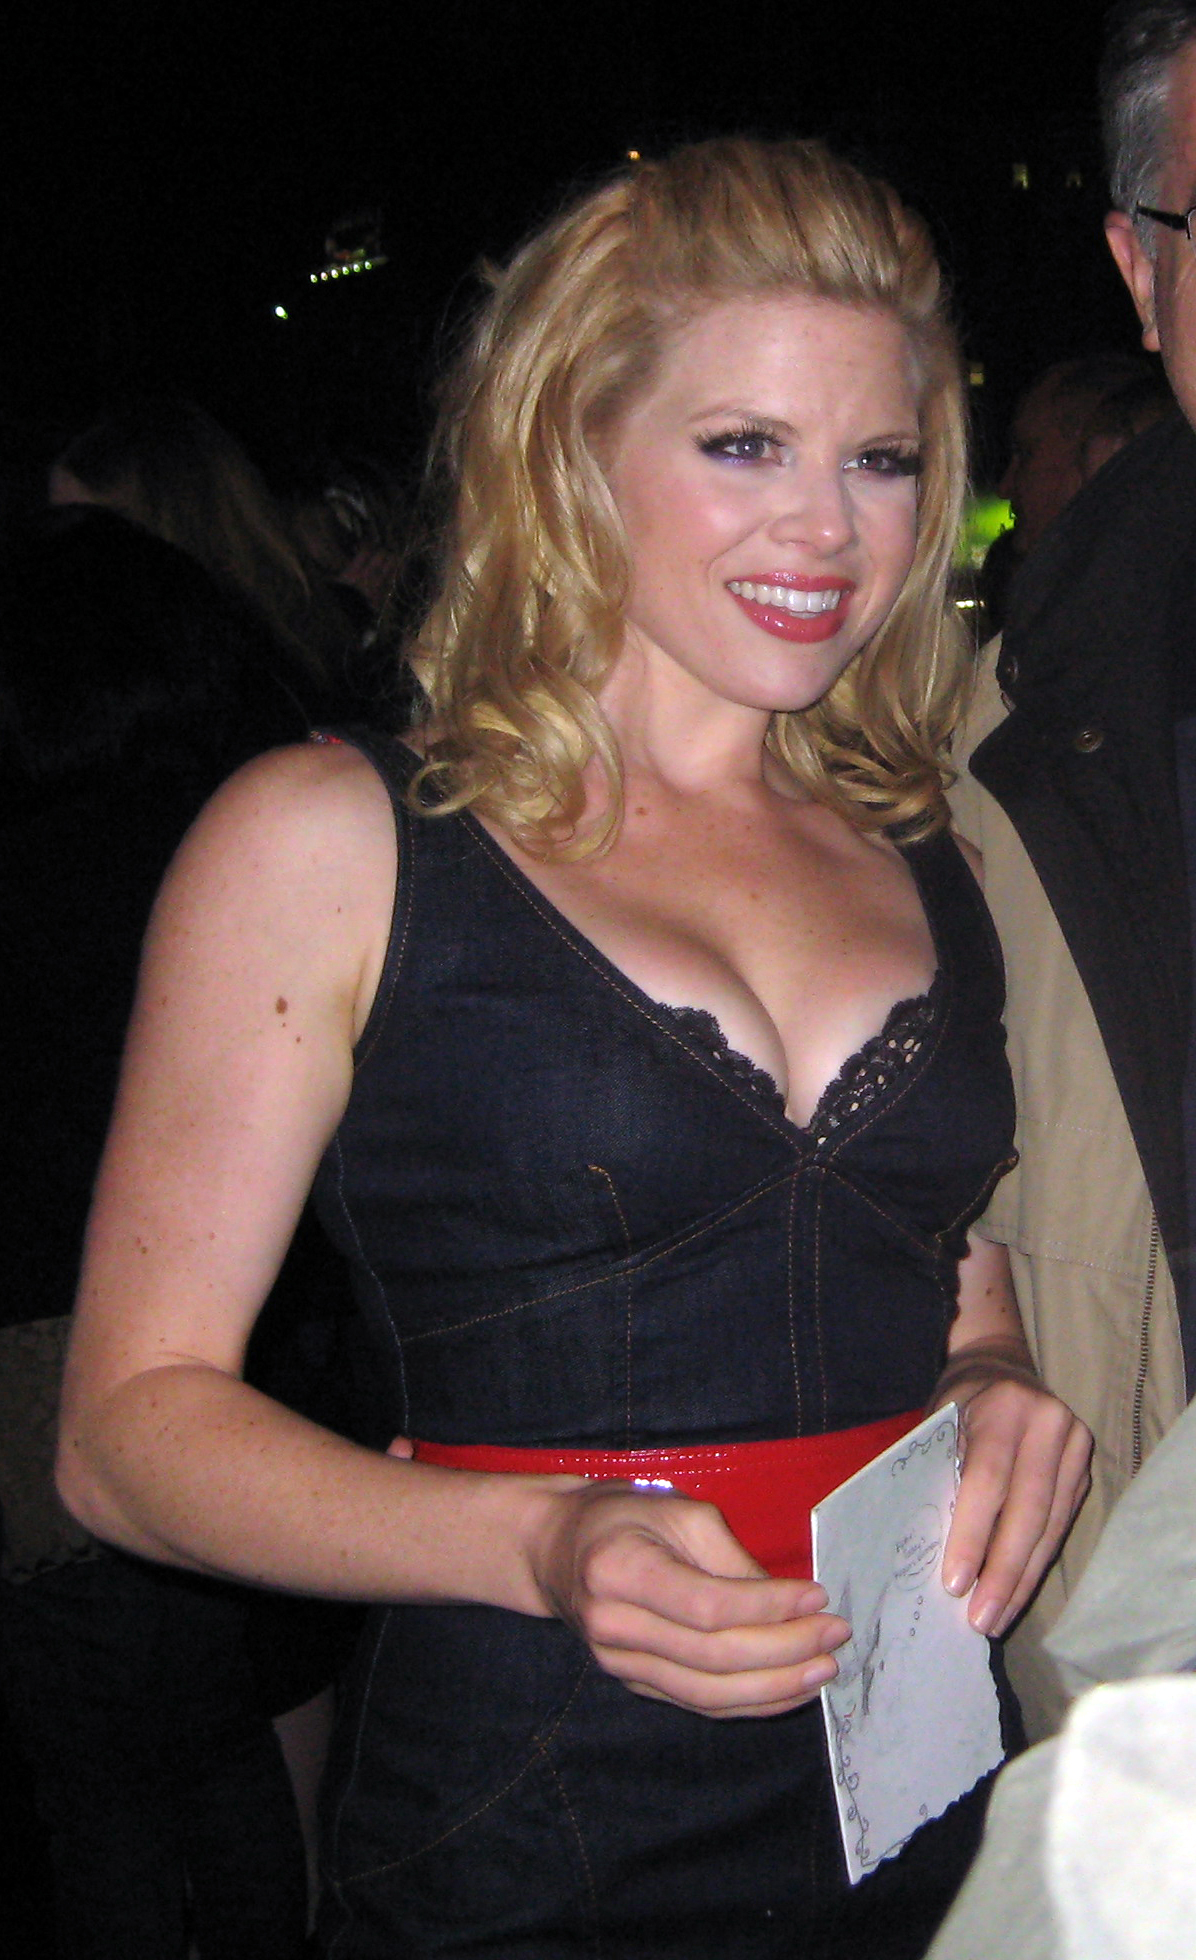 The 37-year old daughter of father Jack Hilty and mother Donna Hilty Megan Hilty in 2018 photo. Megan Hilty earned a  million dollar salary - leaving the net worth at 145 million in 2018